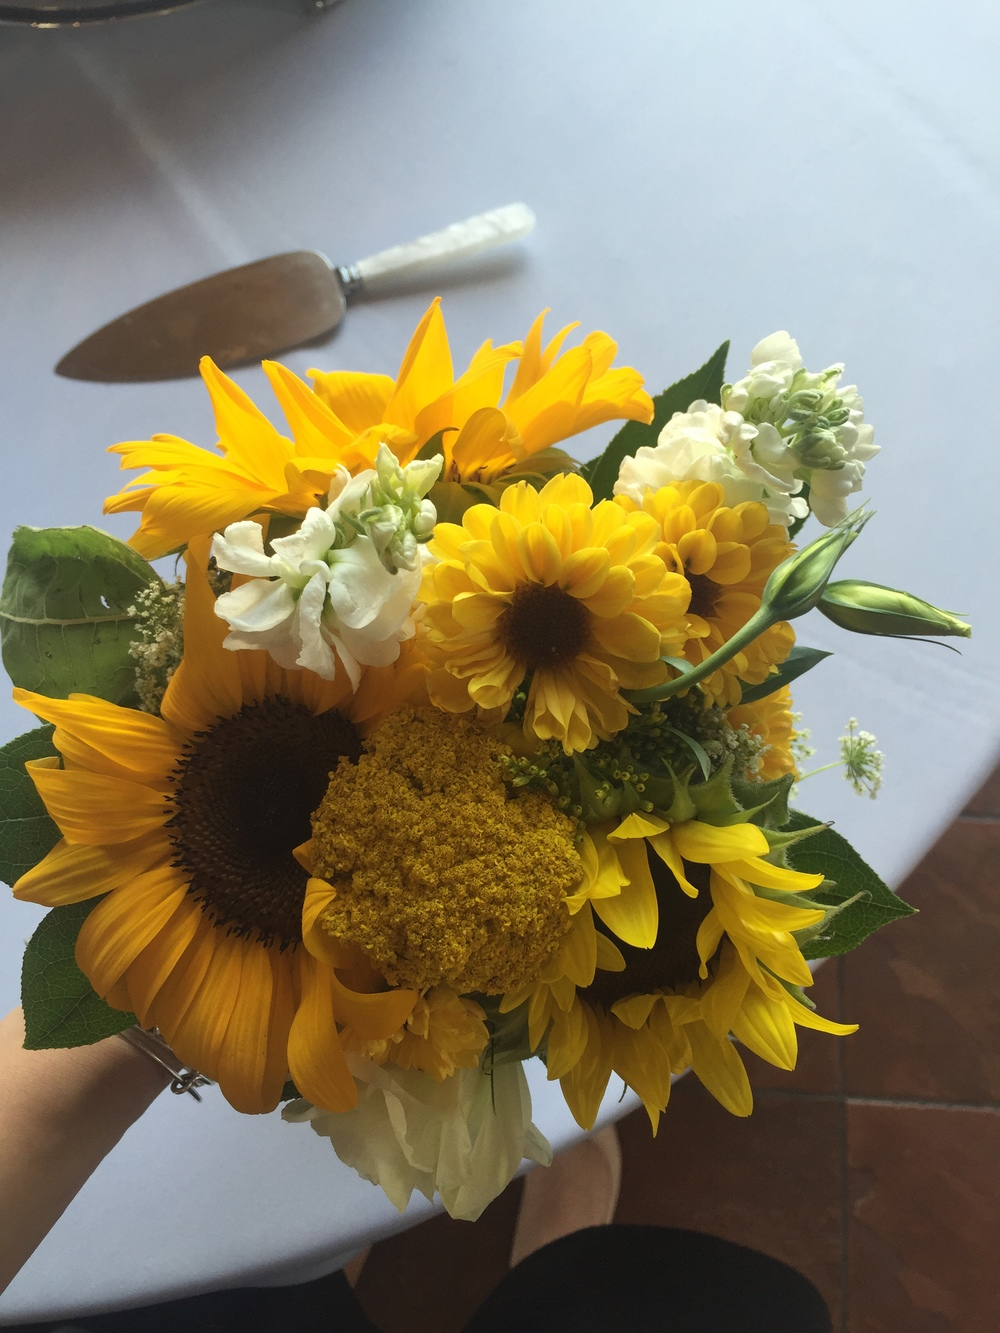 Ah! Katie's bouquet, done by  Morrison's Flowers . You can't deny the perfection of sunflowers!